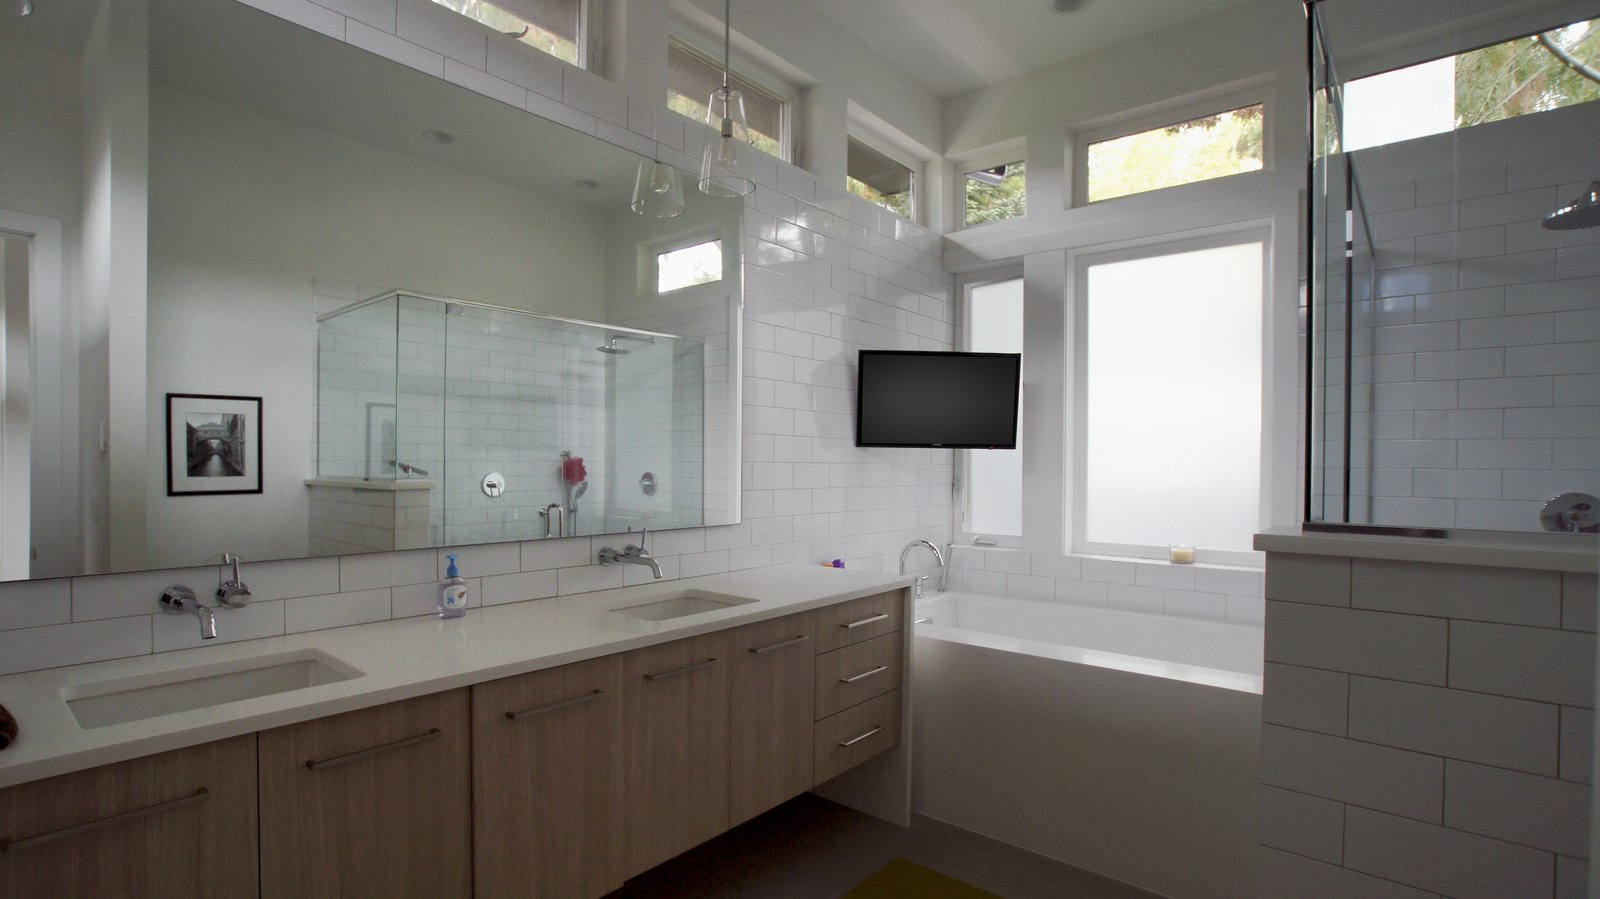 The master bathroom is a light-filled space of relaxation with a large bathtub as well a spacious shower. The tile backsplash provides a modern finish and every convenience was added to truly make this a room of leisure.  Modern Courtyard Home by Atelier Drome